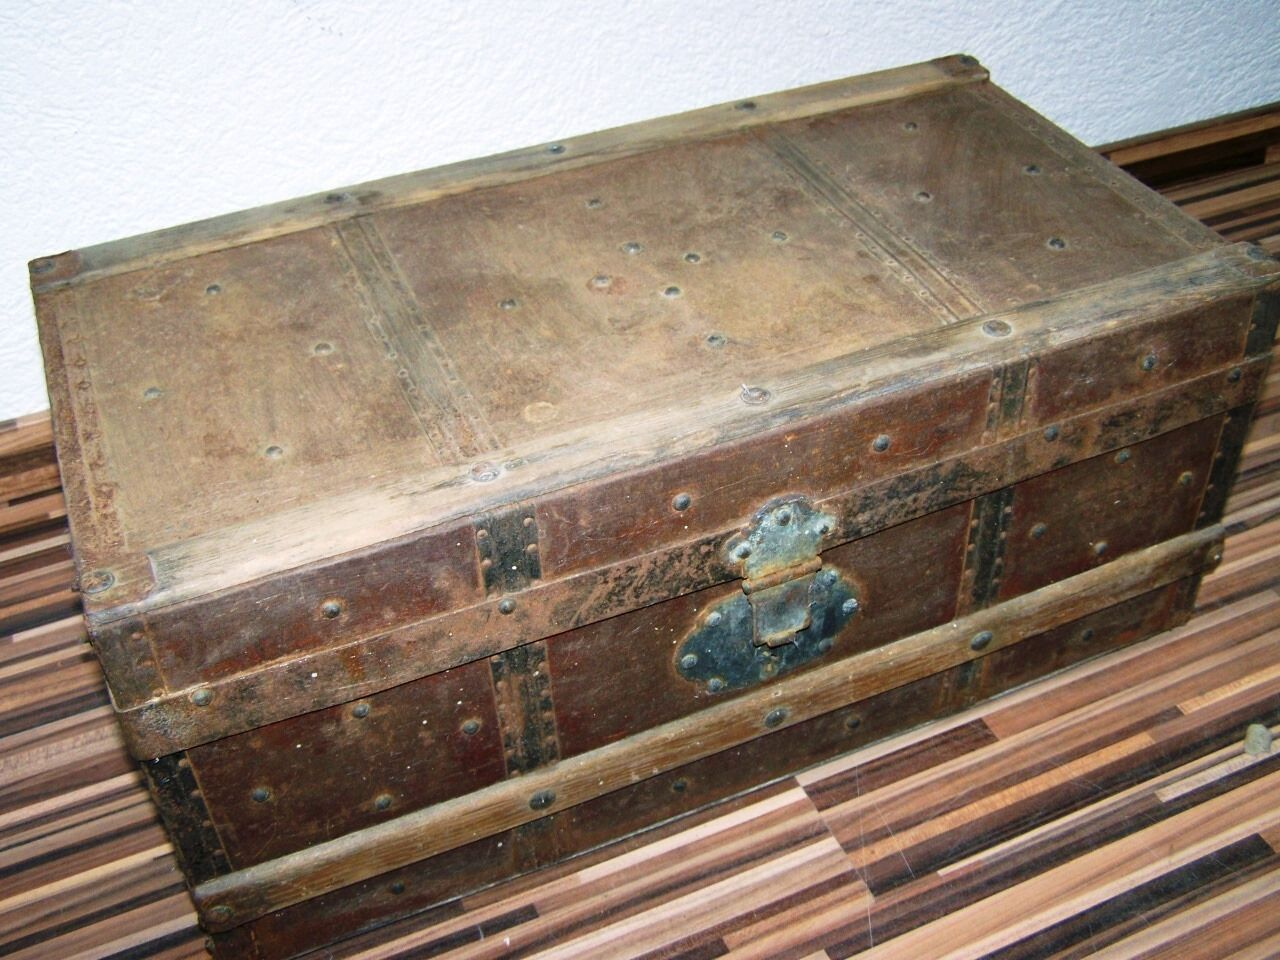 Beautiful old Wooden box with Metal fittings, Treasure chest, rare Size